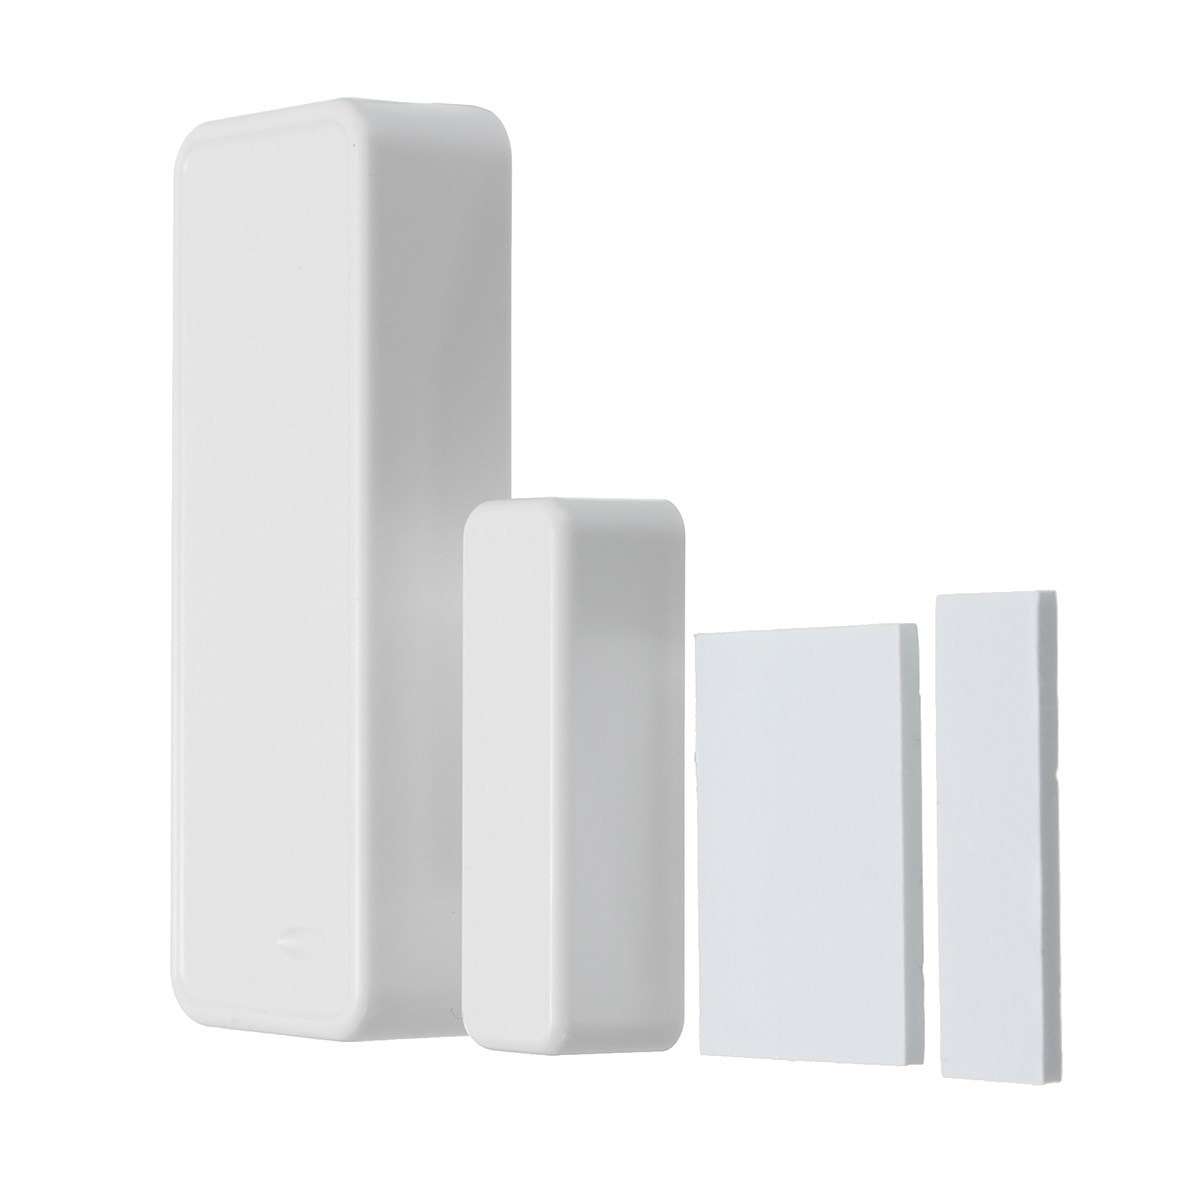 NEW Safurance Wireless Alarm Sensors Accessories For G90B PLUS WiFi GSM Home Alarm System Door Sensor thyssen parts leveling sensor yg 39g1k door zone switch leveling photoelectric sensors